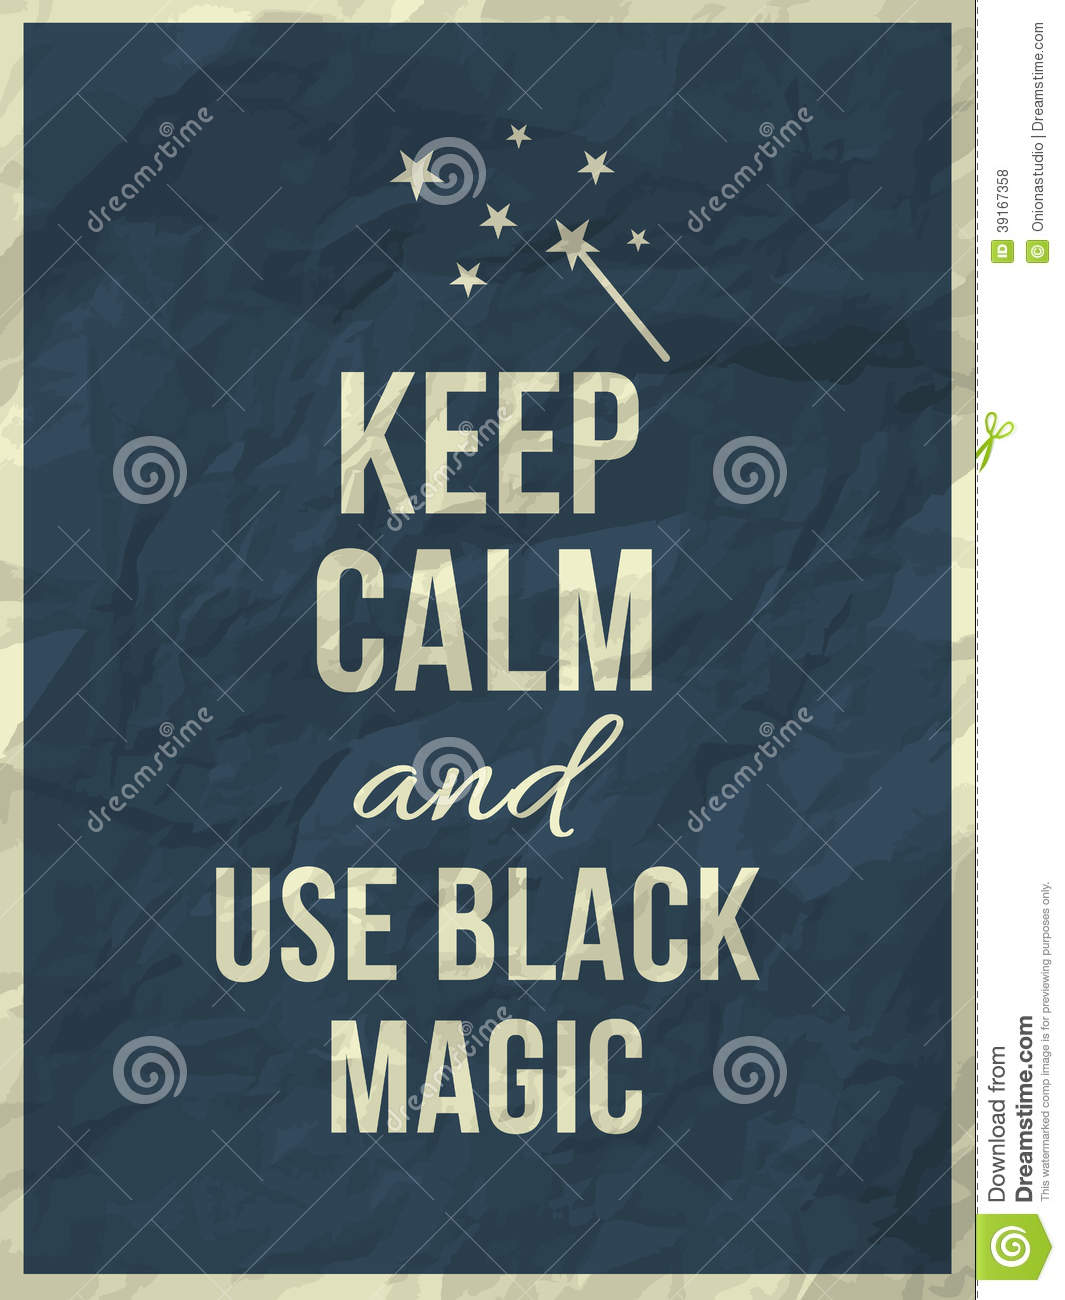 Dow Quotes Real Time: Keep Calm Magic Quote Stock Vector. Illustration Of Frame